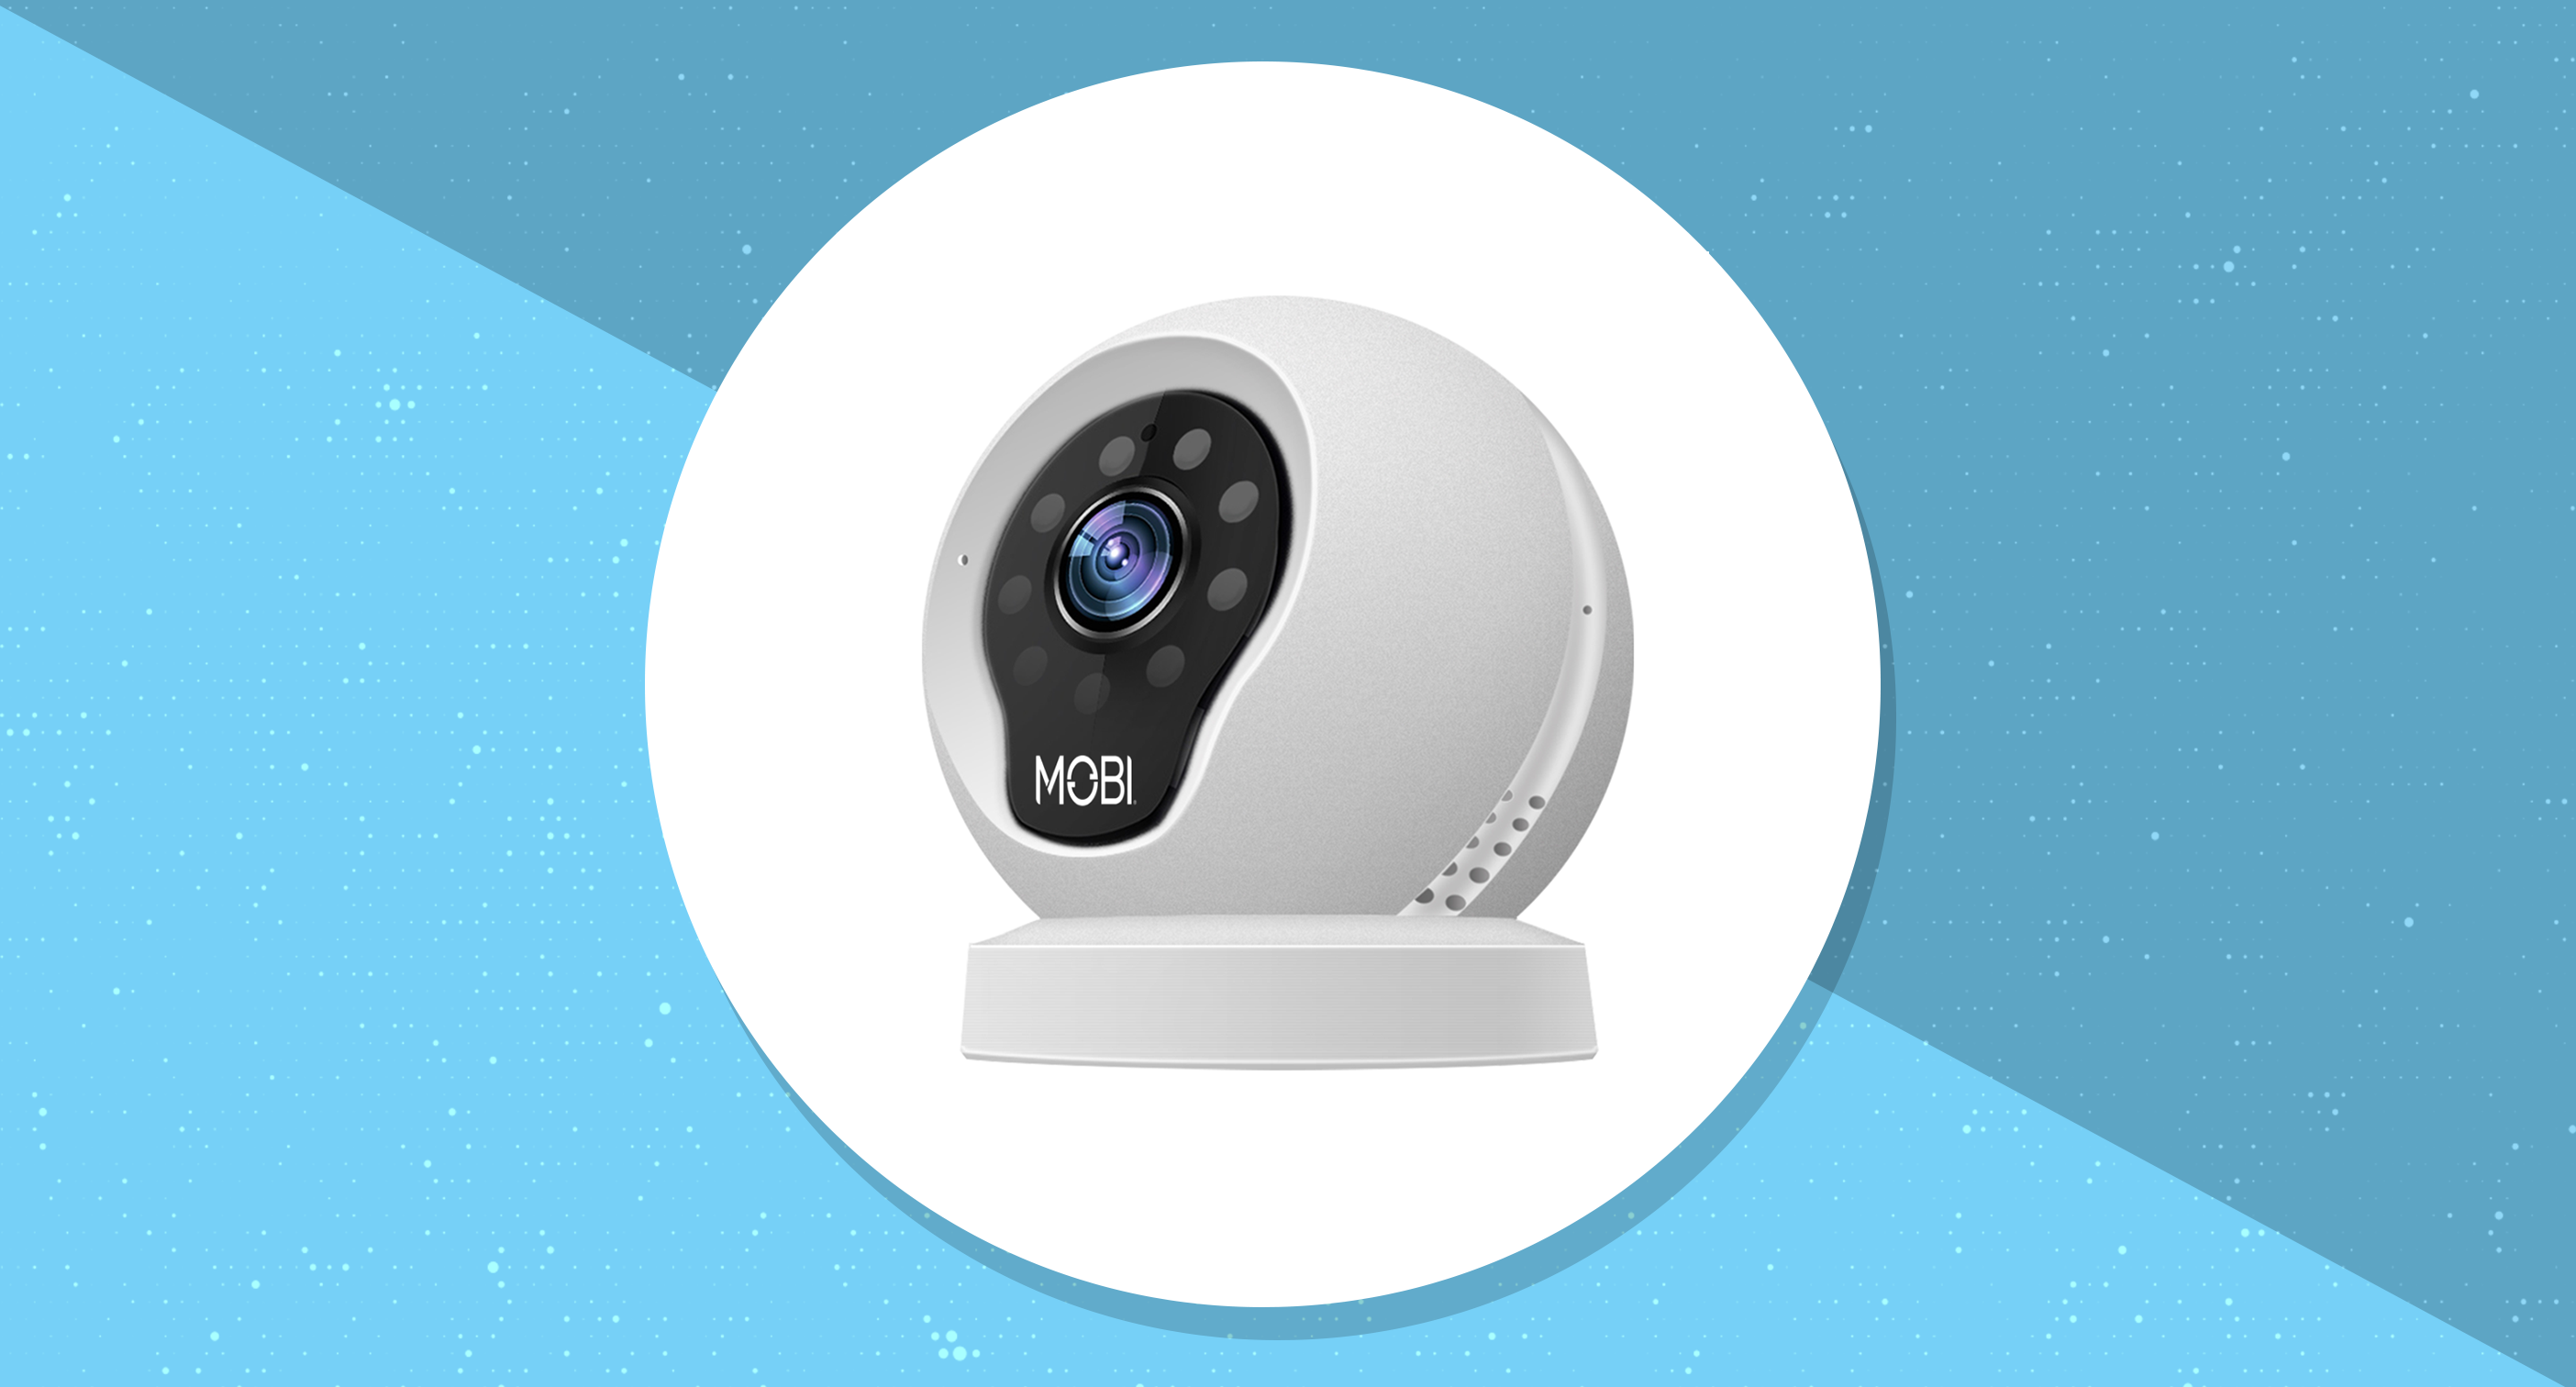 I spy a deal: This indoor surveillance camera is on sale for just 30 bucks at Walmart